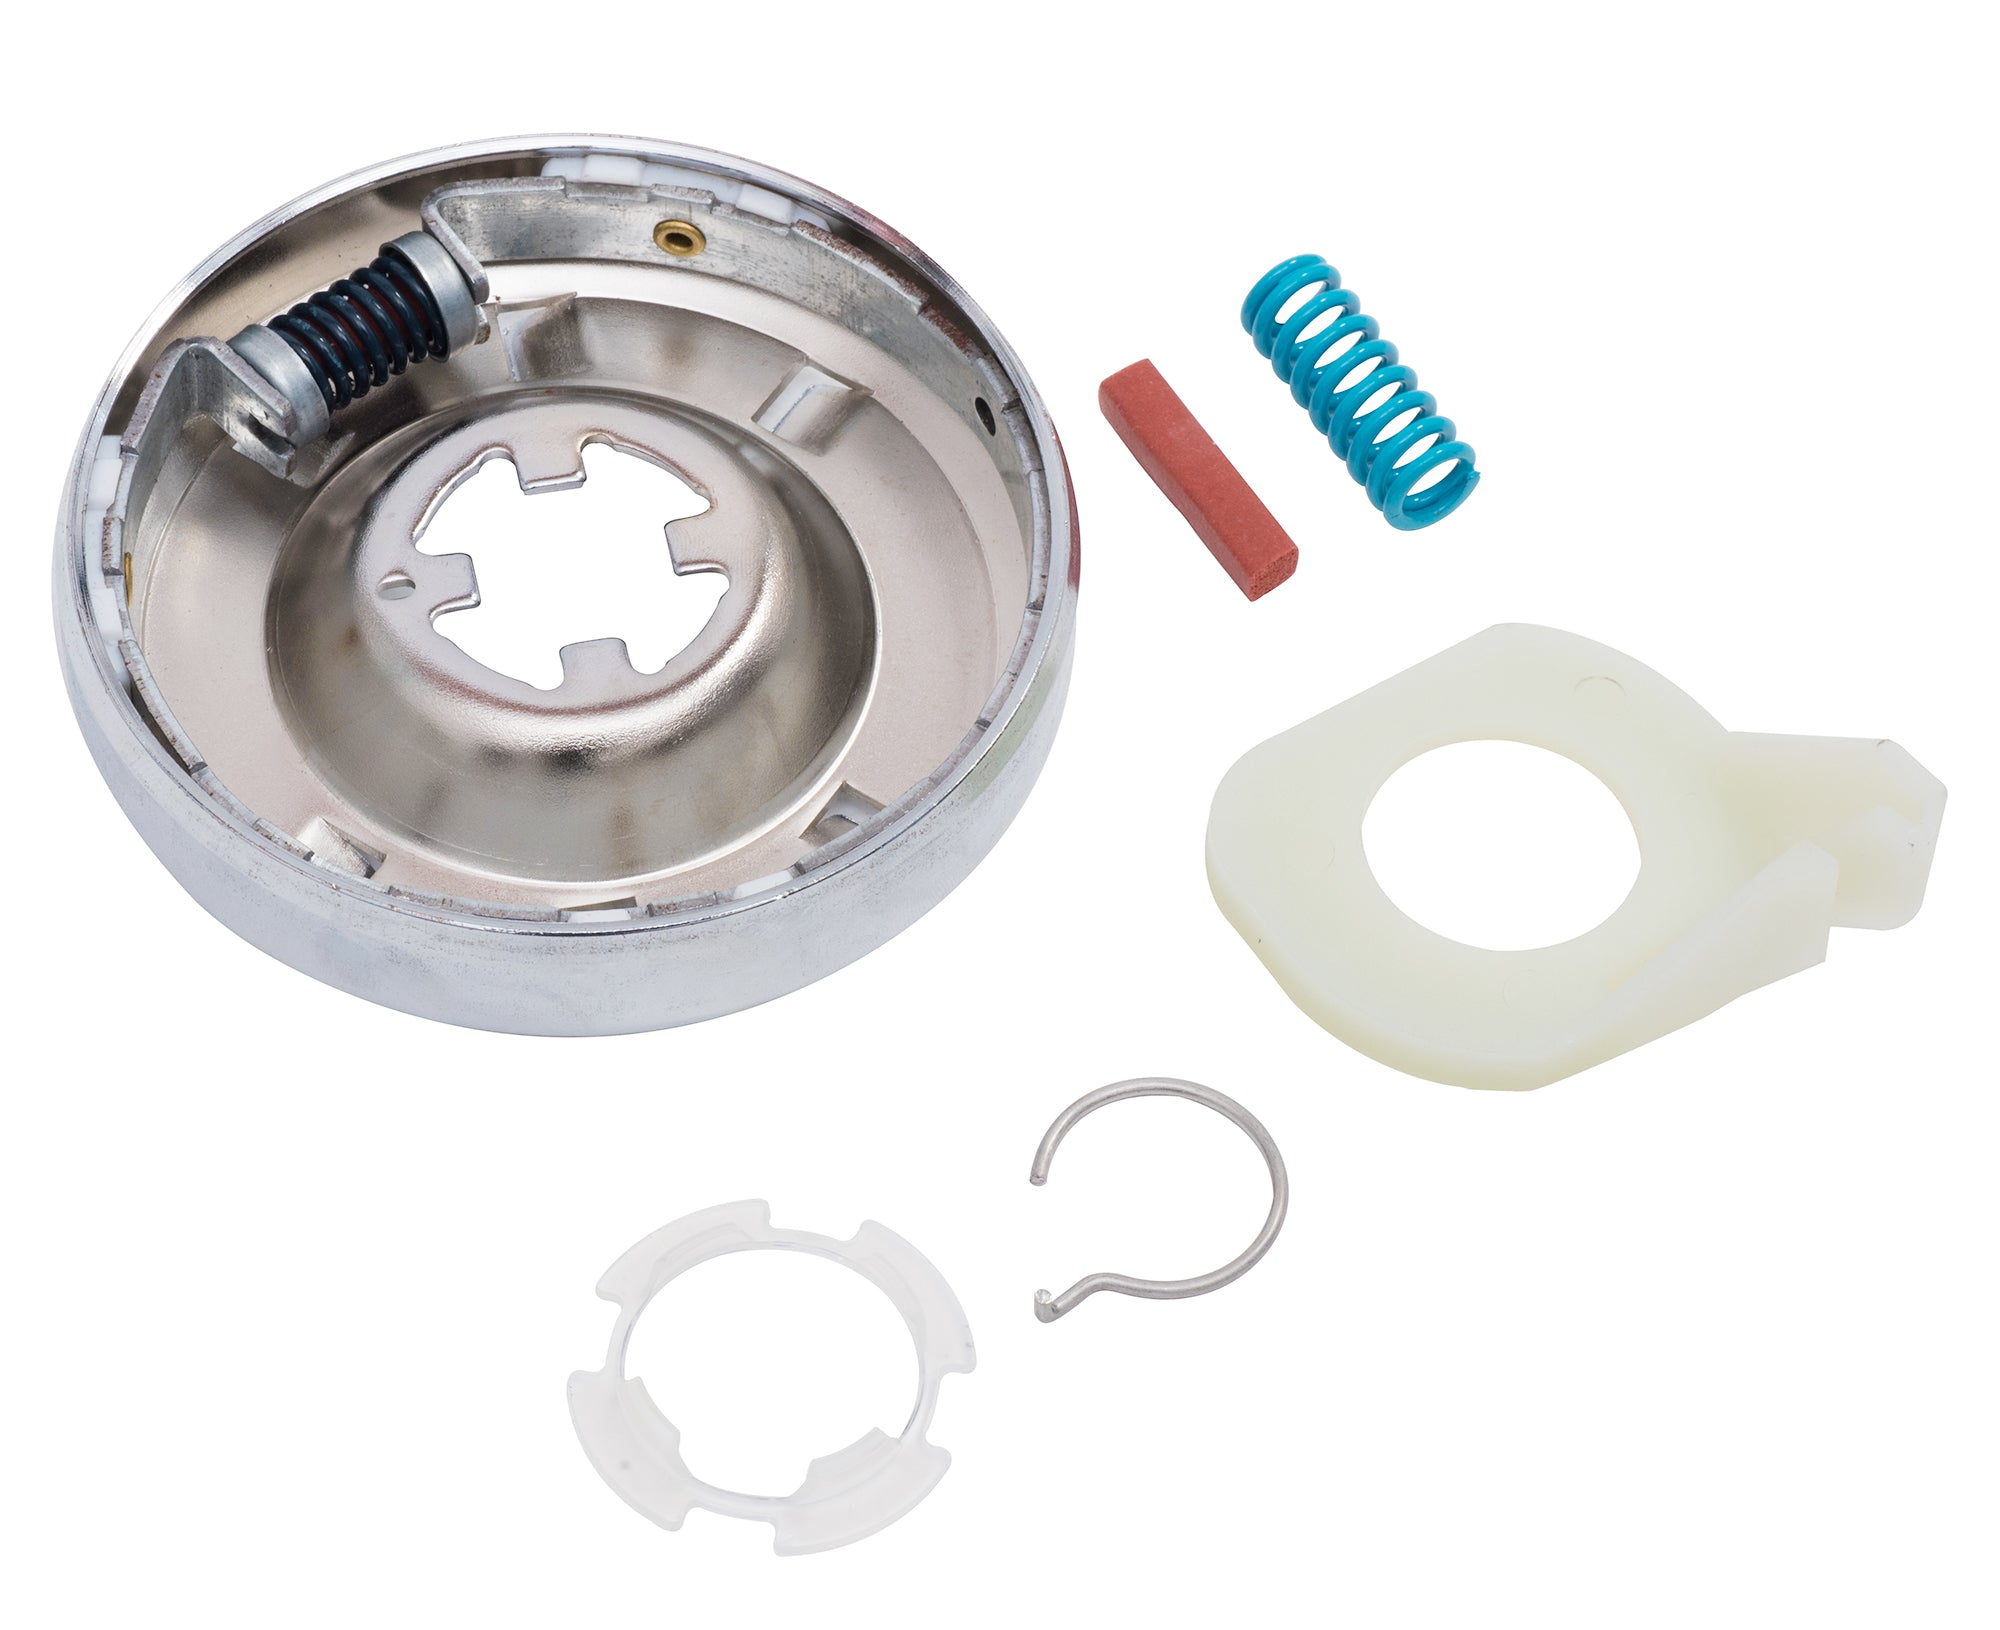 Ultra Durable 285785 Washer Clutch Kit Replacement by Blue Stars - Exact  Fit for Whirlpool & Kenmore Washer - Simple Instruction Included - Replaces